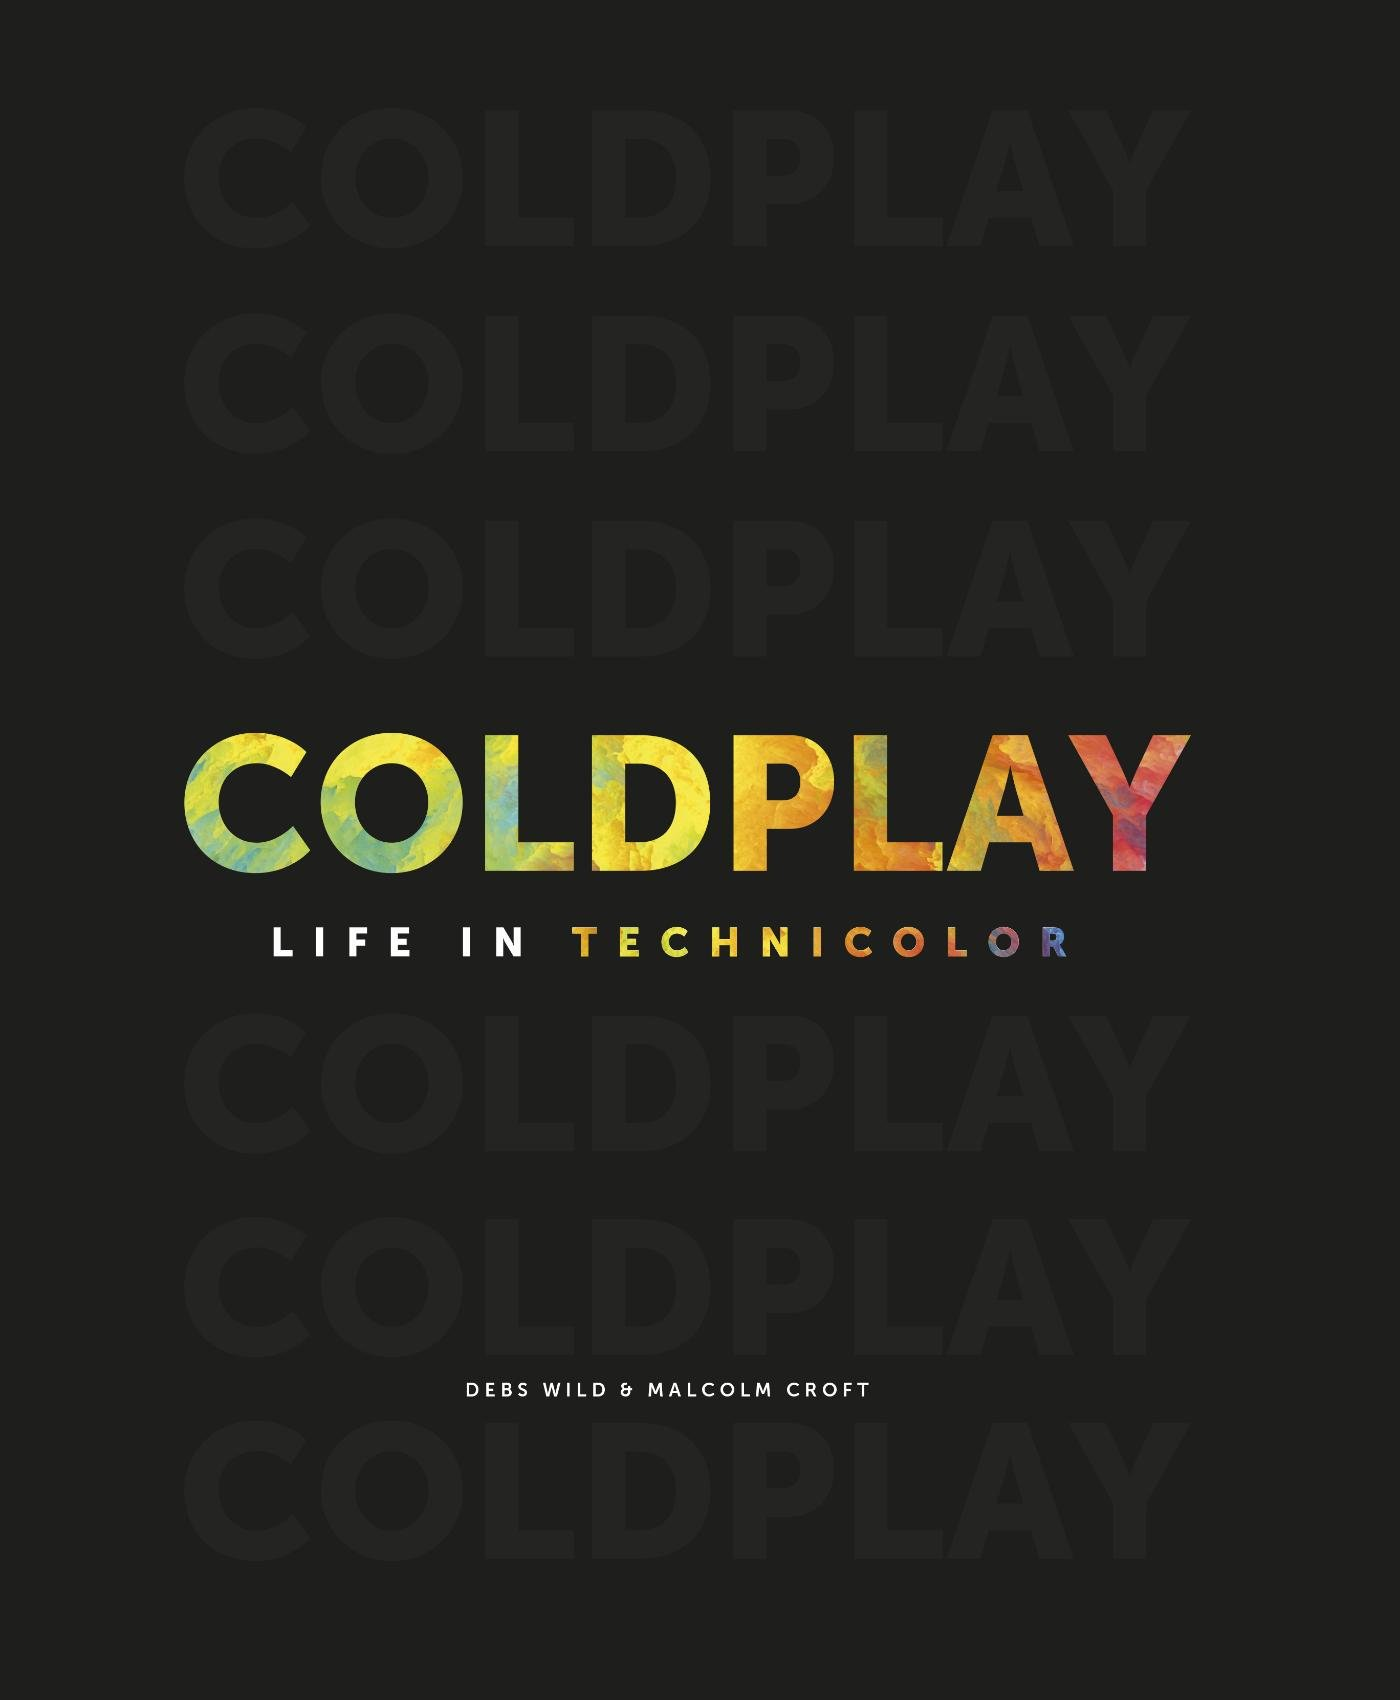 Coldplay: Life in Technicolor: Amazon.es: Malcolm Croft: Libros en idiomas extranjeros